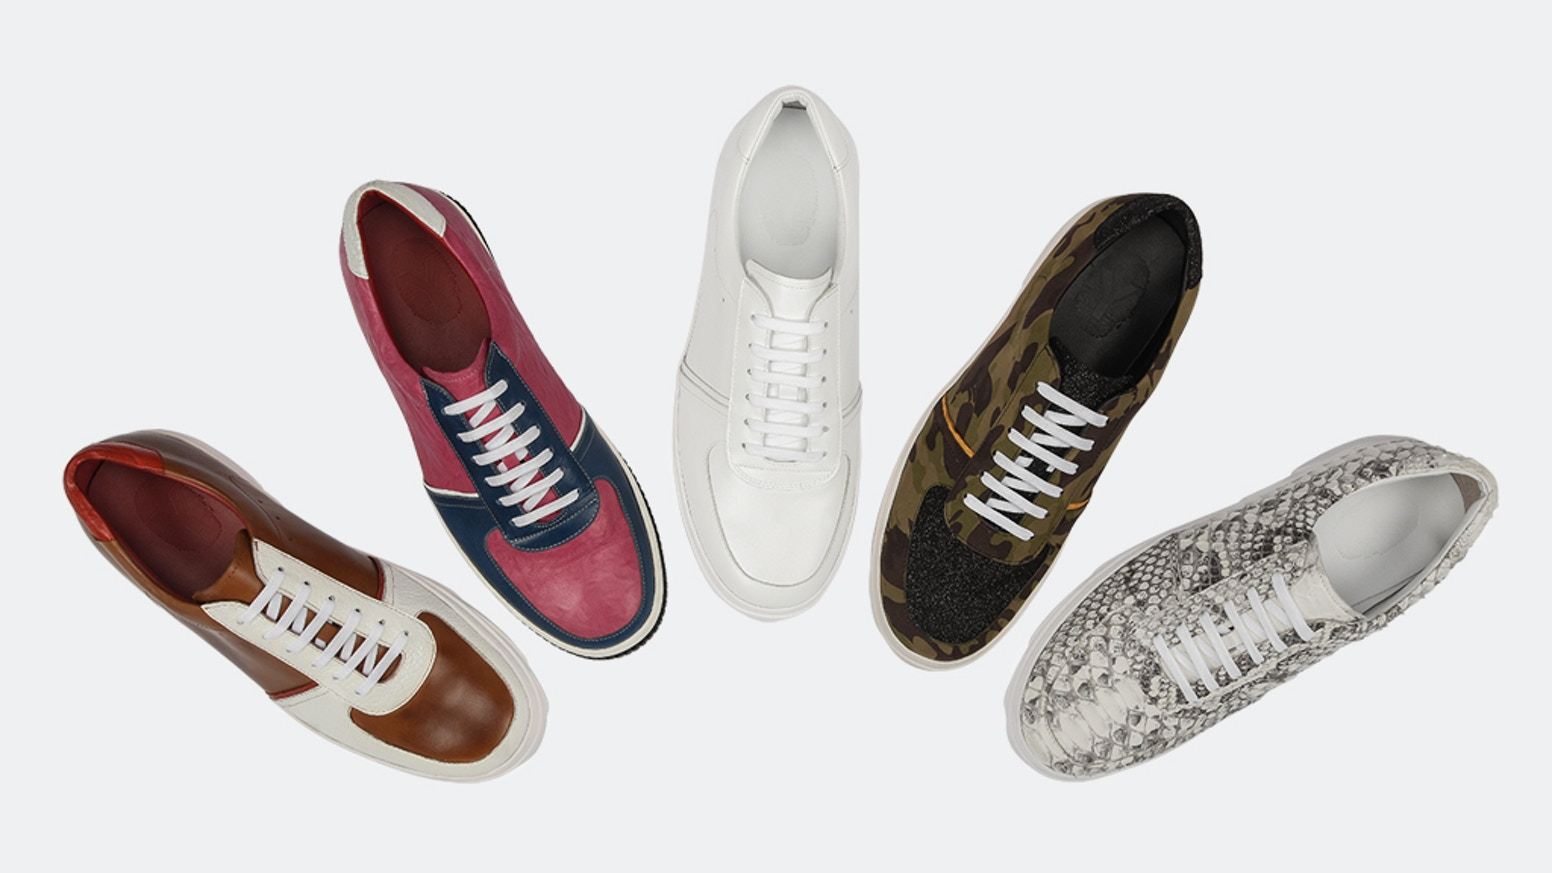 Ysneakers Customize Your Own Unique Pair Of Luxury Sneakers By Diamond Walker Pte Ltd Kickstarter